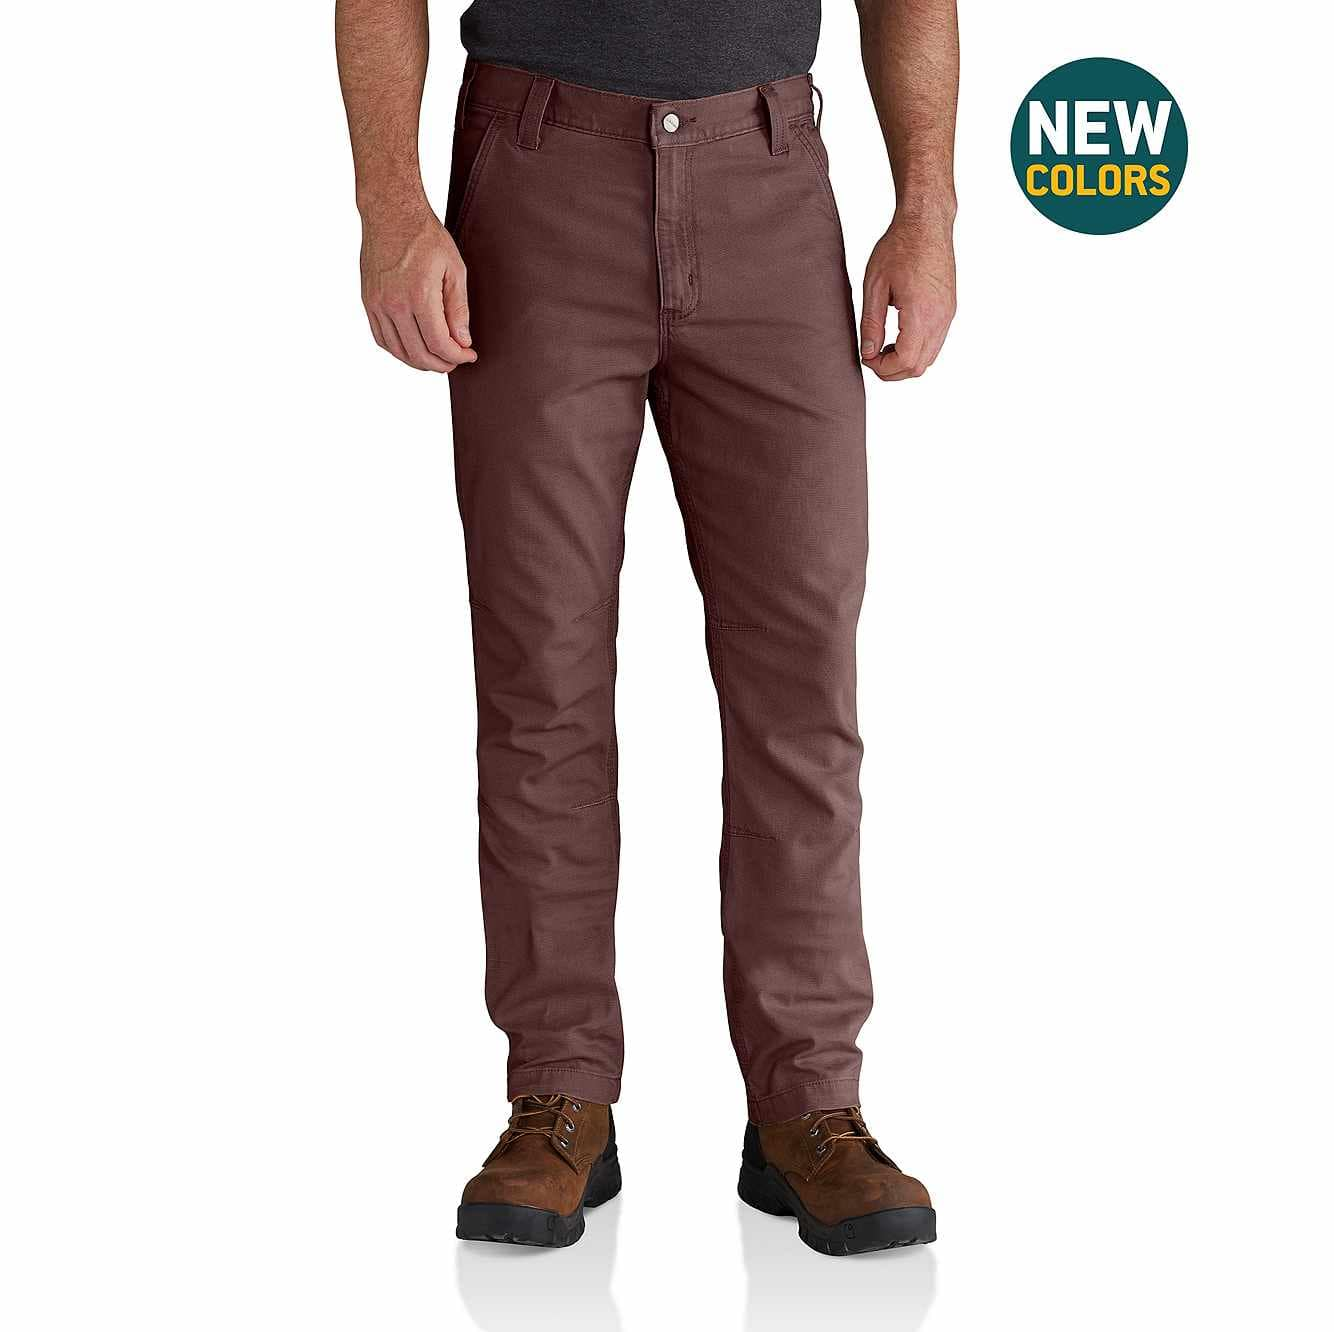 Picture of Rugged Flex® Rigby Straight Fit Pant in Dark Cedar